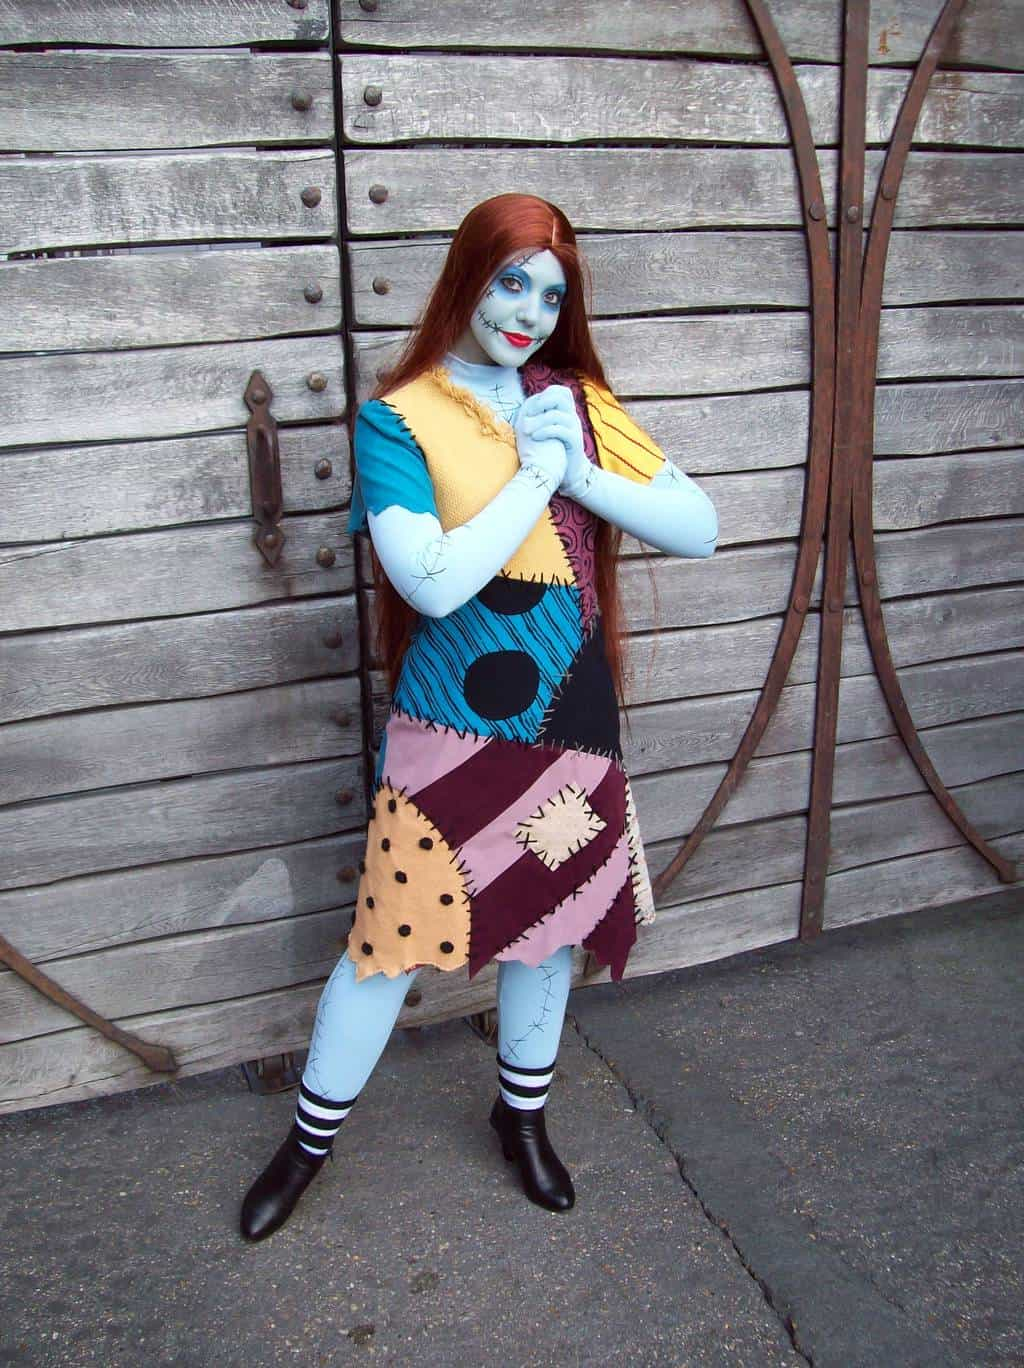 Sally does Meet'n'Greets during the Halloween Season and for the first time during the Christmas Season in 2012